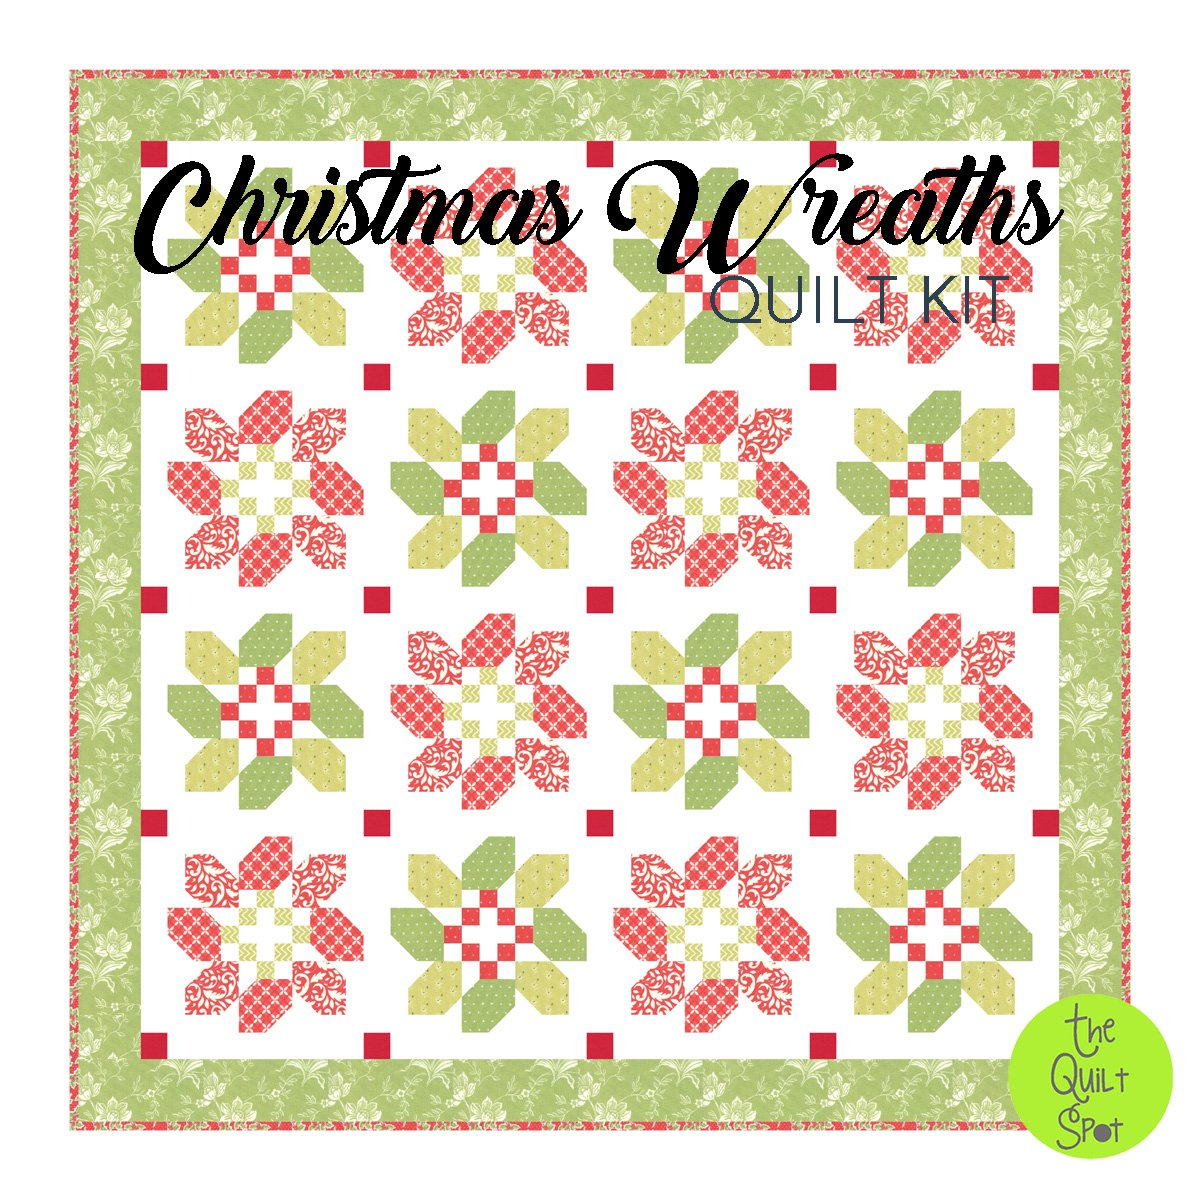 Christmas Wreaths Quilt Kit